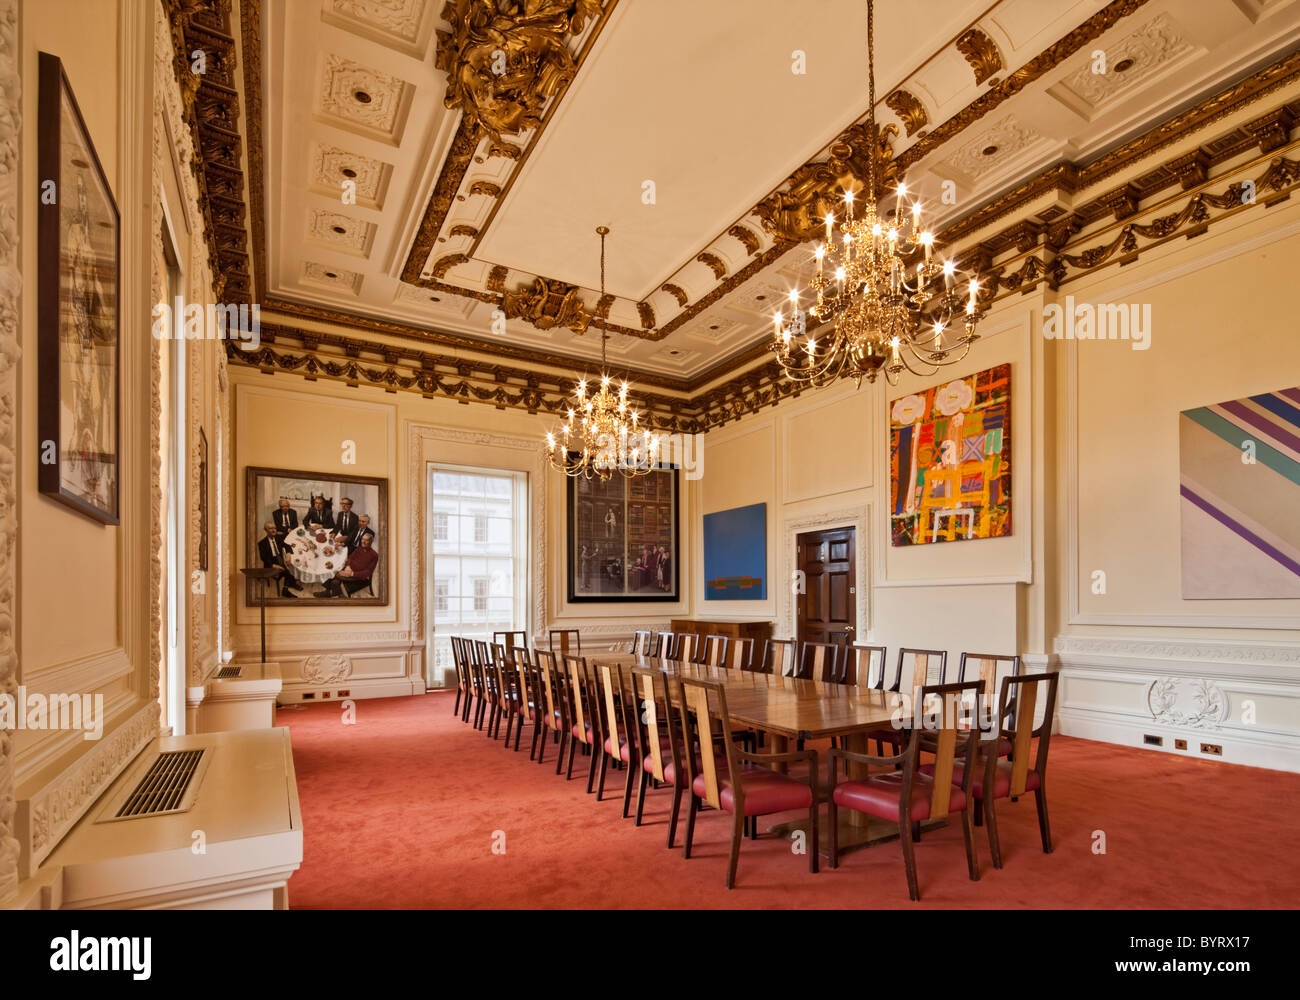 The british academy at carlton house terrace a former for 17 carlton house terrace london